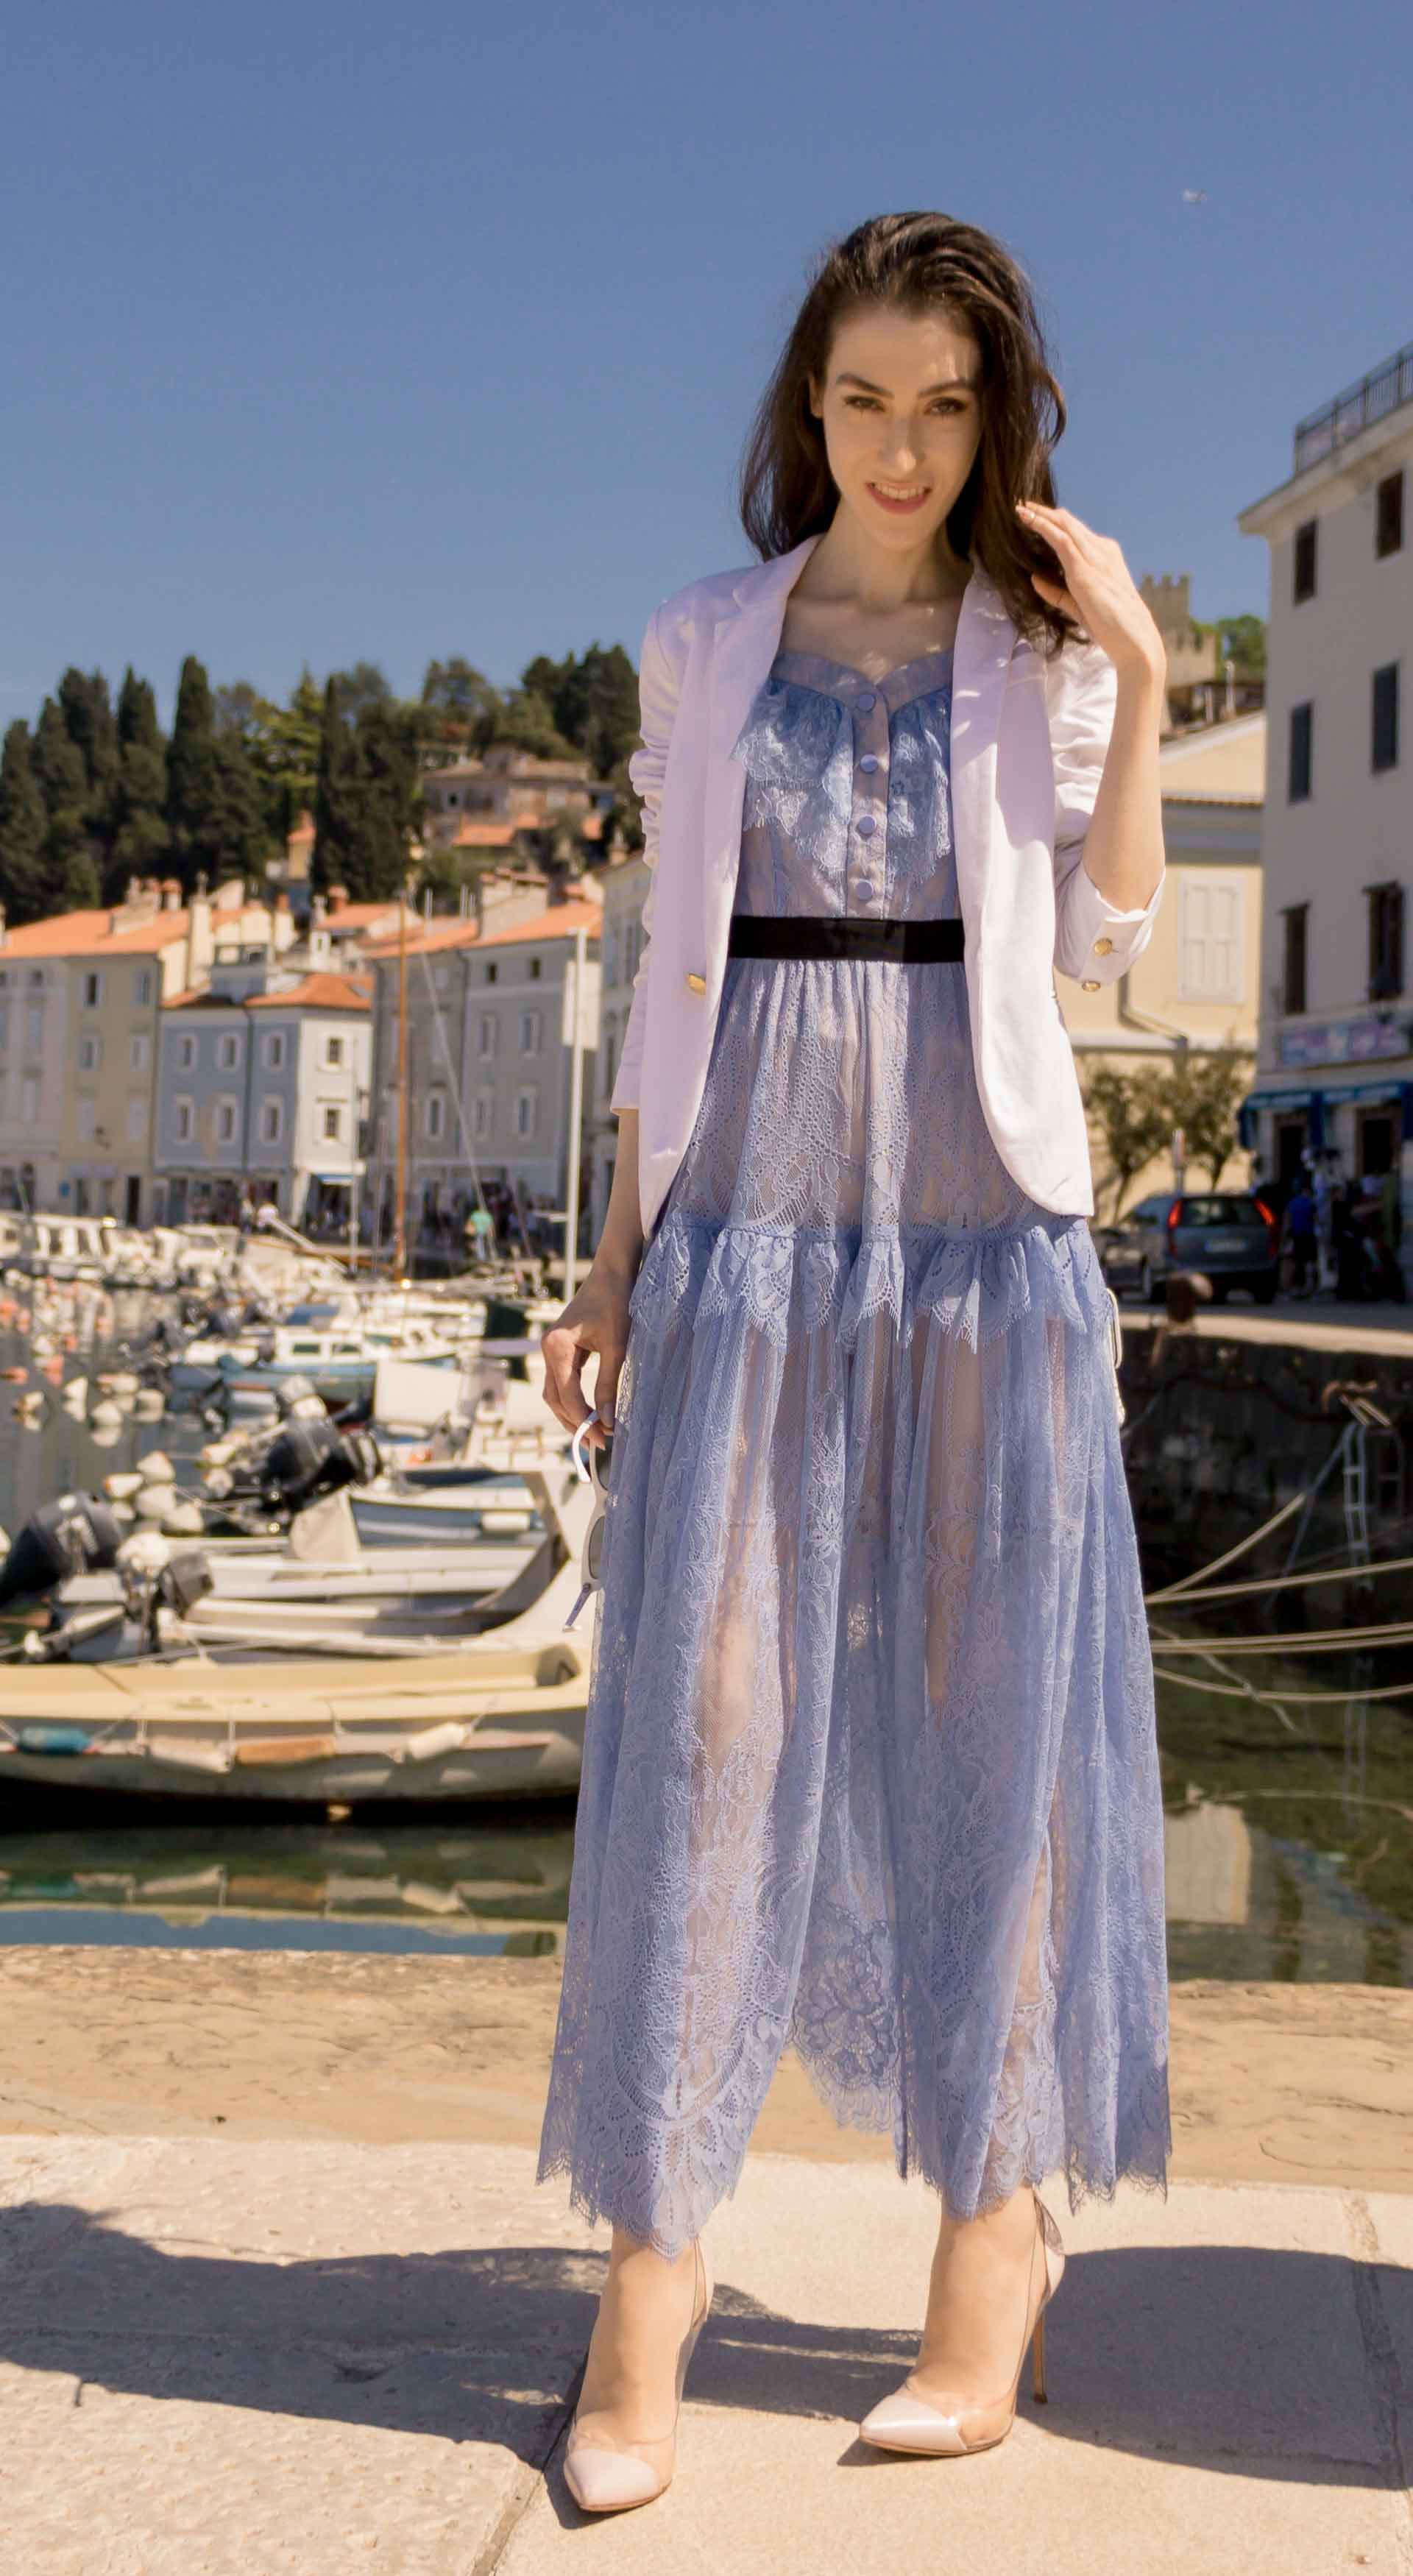 Veronika Lipar Fashion Blogger of Brunette from Wall Street dressed in Self-Portrait blue lace dress, white single button blazer, blush Gianvito Rossi plexi pumps, white shoulder bag, Lespecs white cat eye sunglasses while standing in the port in Piran